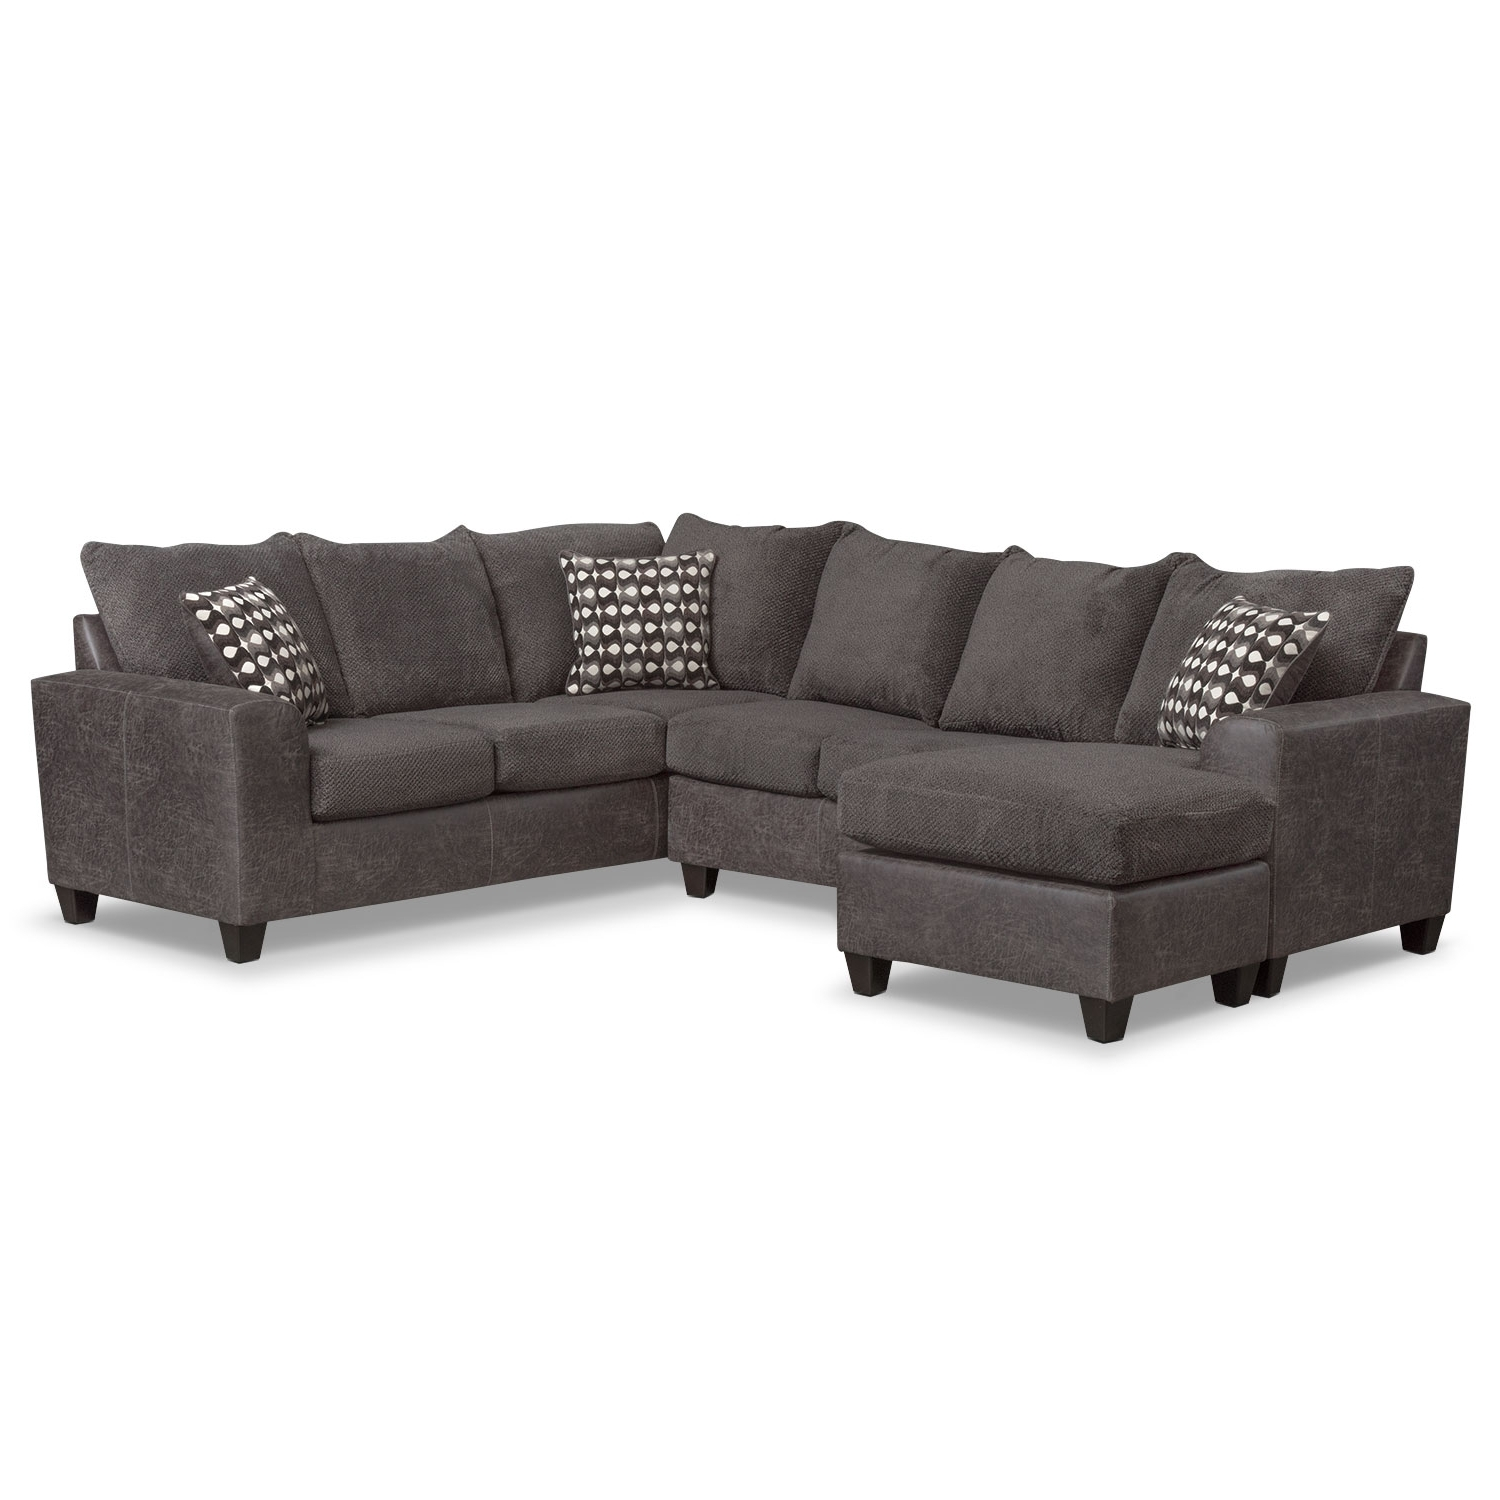 Value City Sectional Sofas For Famous Brando 3 Piece Sectional With Chaise And Swivel Chair Set – Smoke (View 17 of 20)